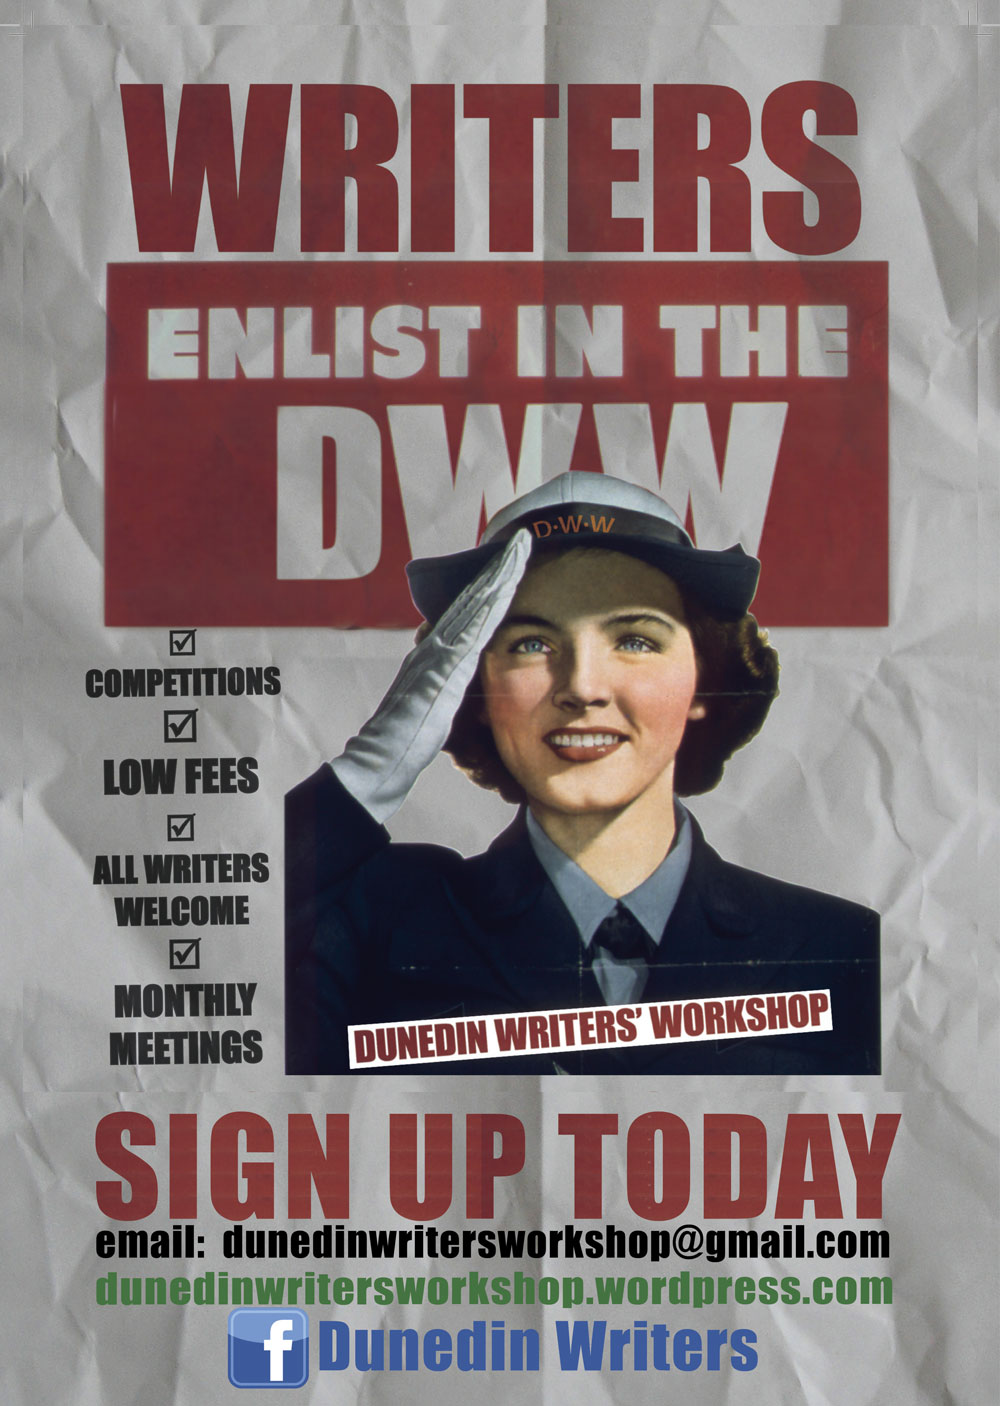 I'm a member of Dunedin Writers' Workshop